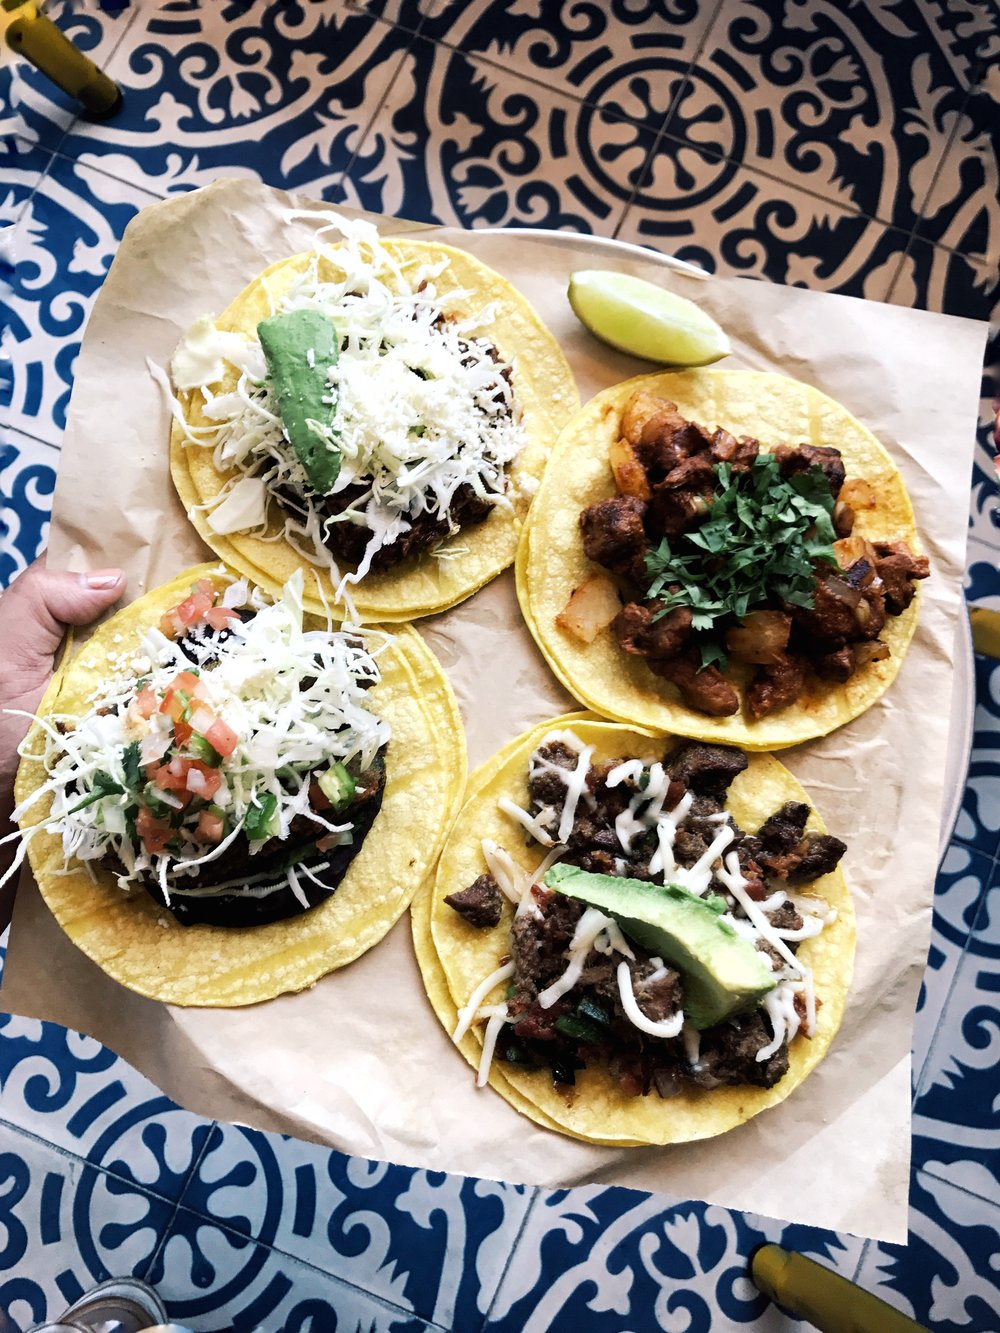 Best Taco Places in Austin, Texas - Papalote Taco House - www.tresgigi.com